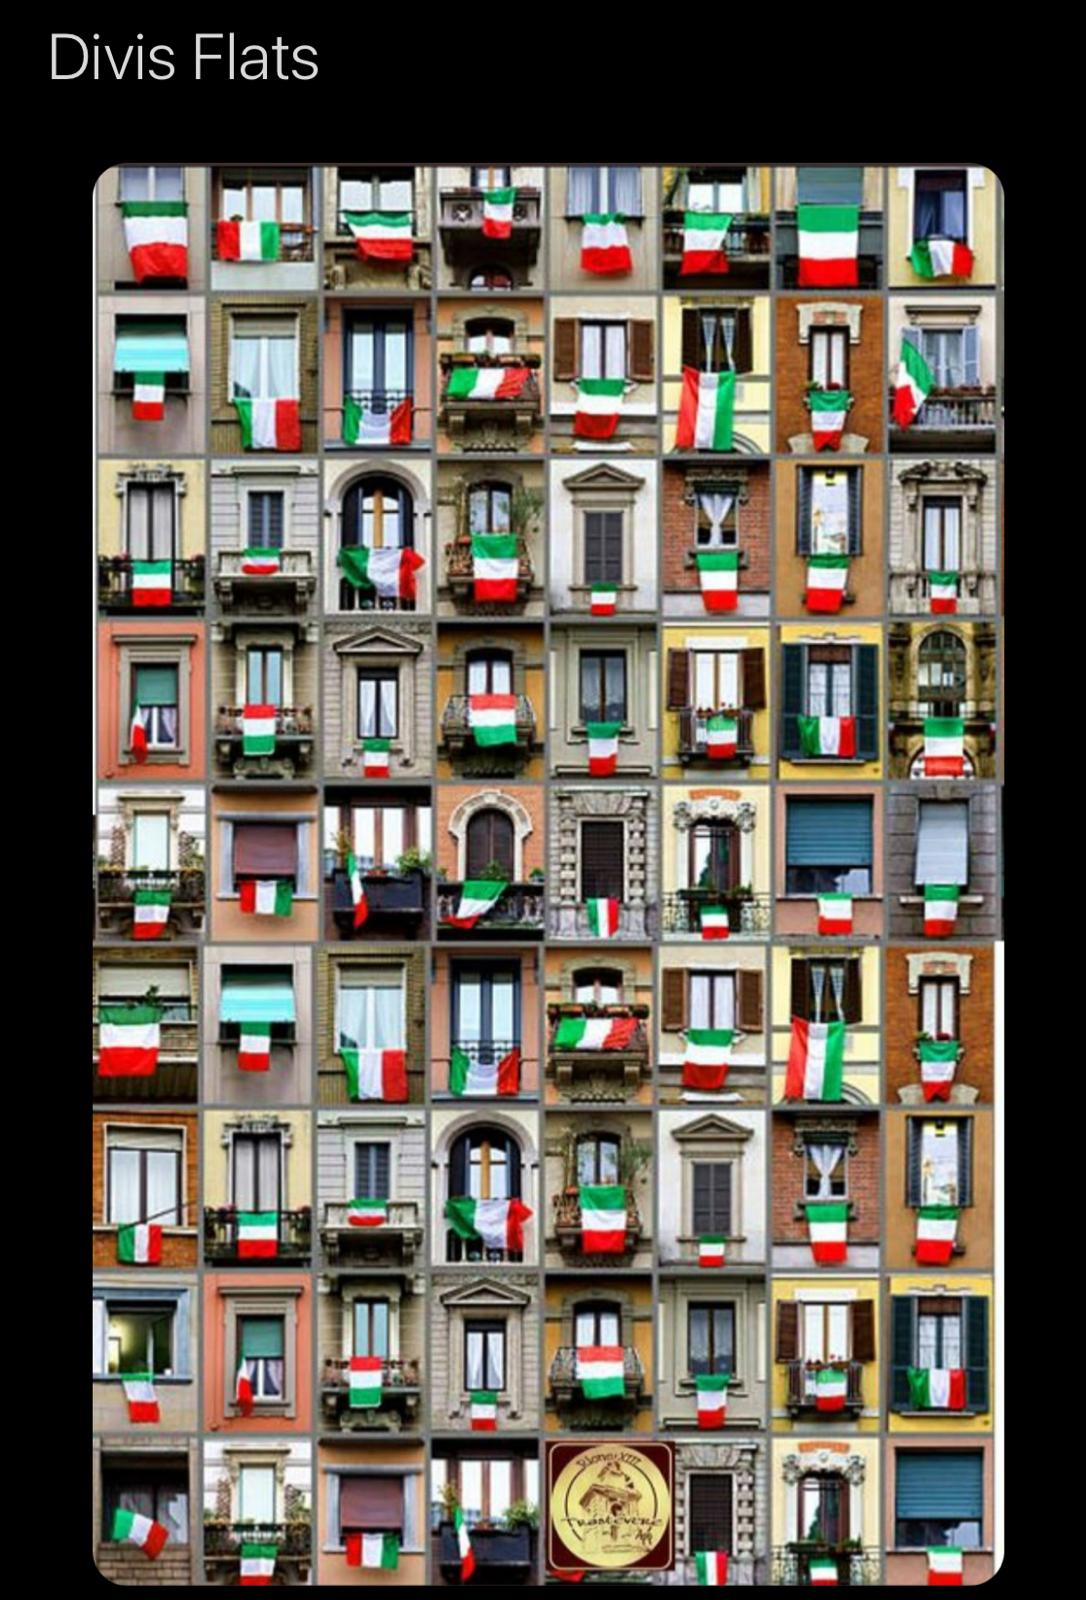 MEAN MEME: The display of support at an Italian apartment block was dubbed Divis Flats online.